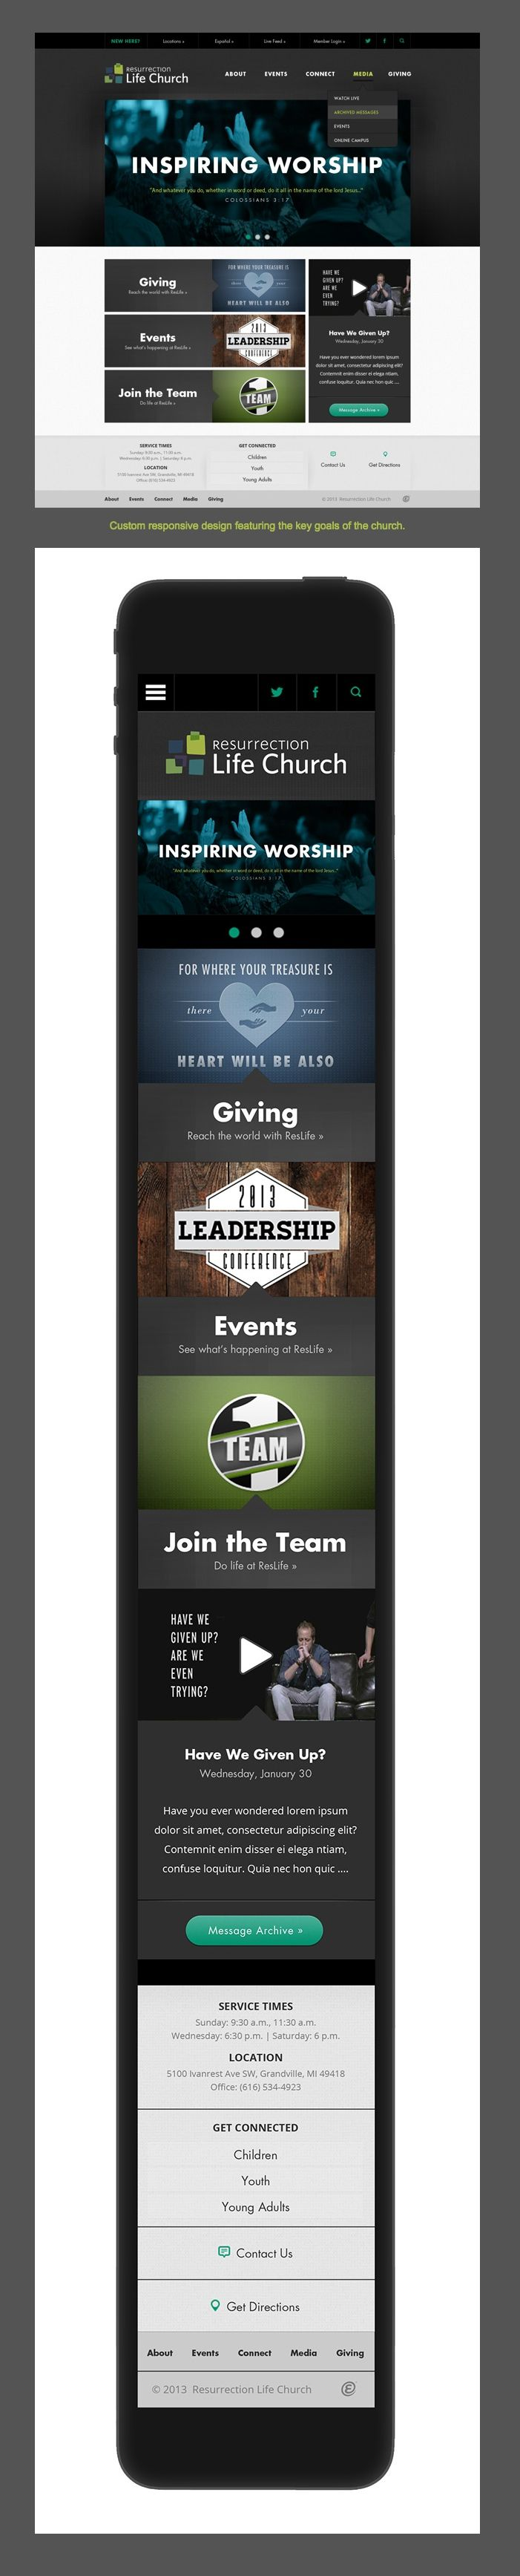 20 best images about Responsive Church Websites on Pinterest ...